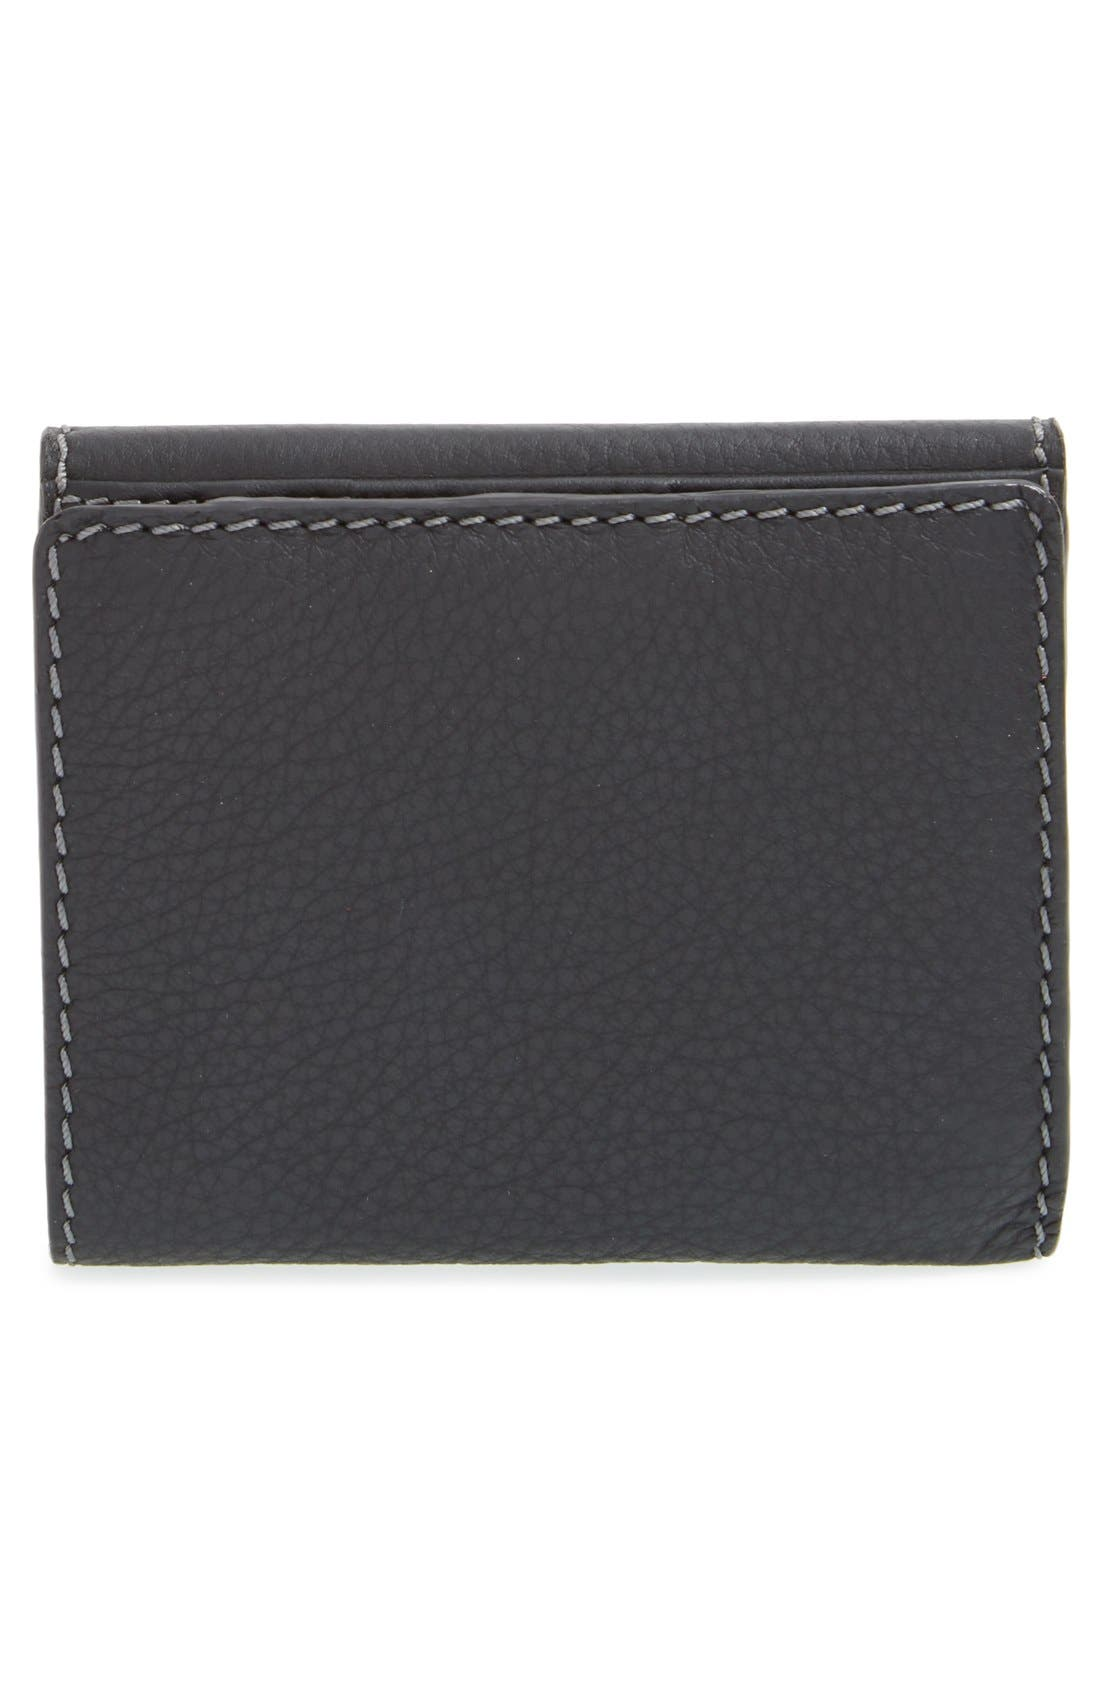 Alternate Image 3  - Chloé 'Marcie' French Wallet